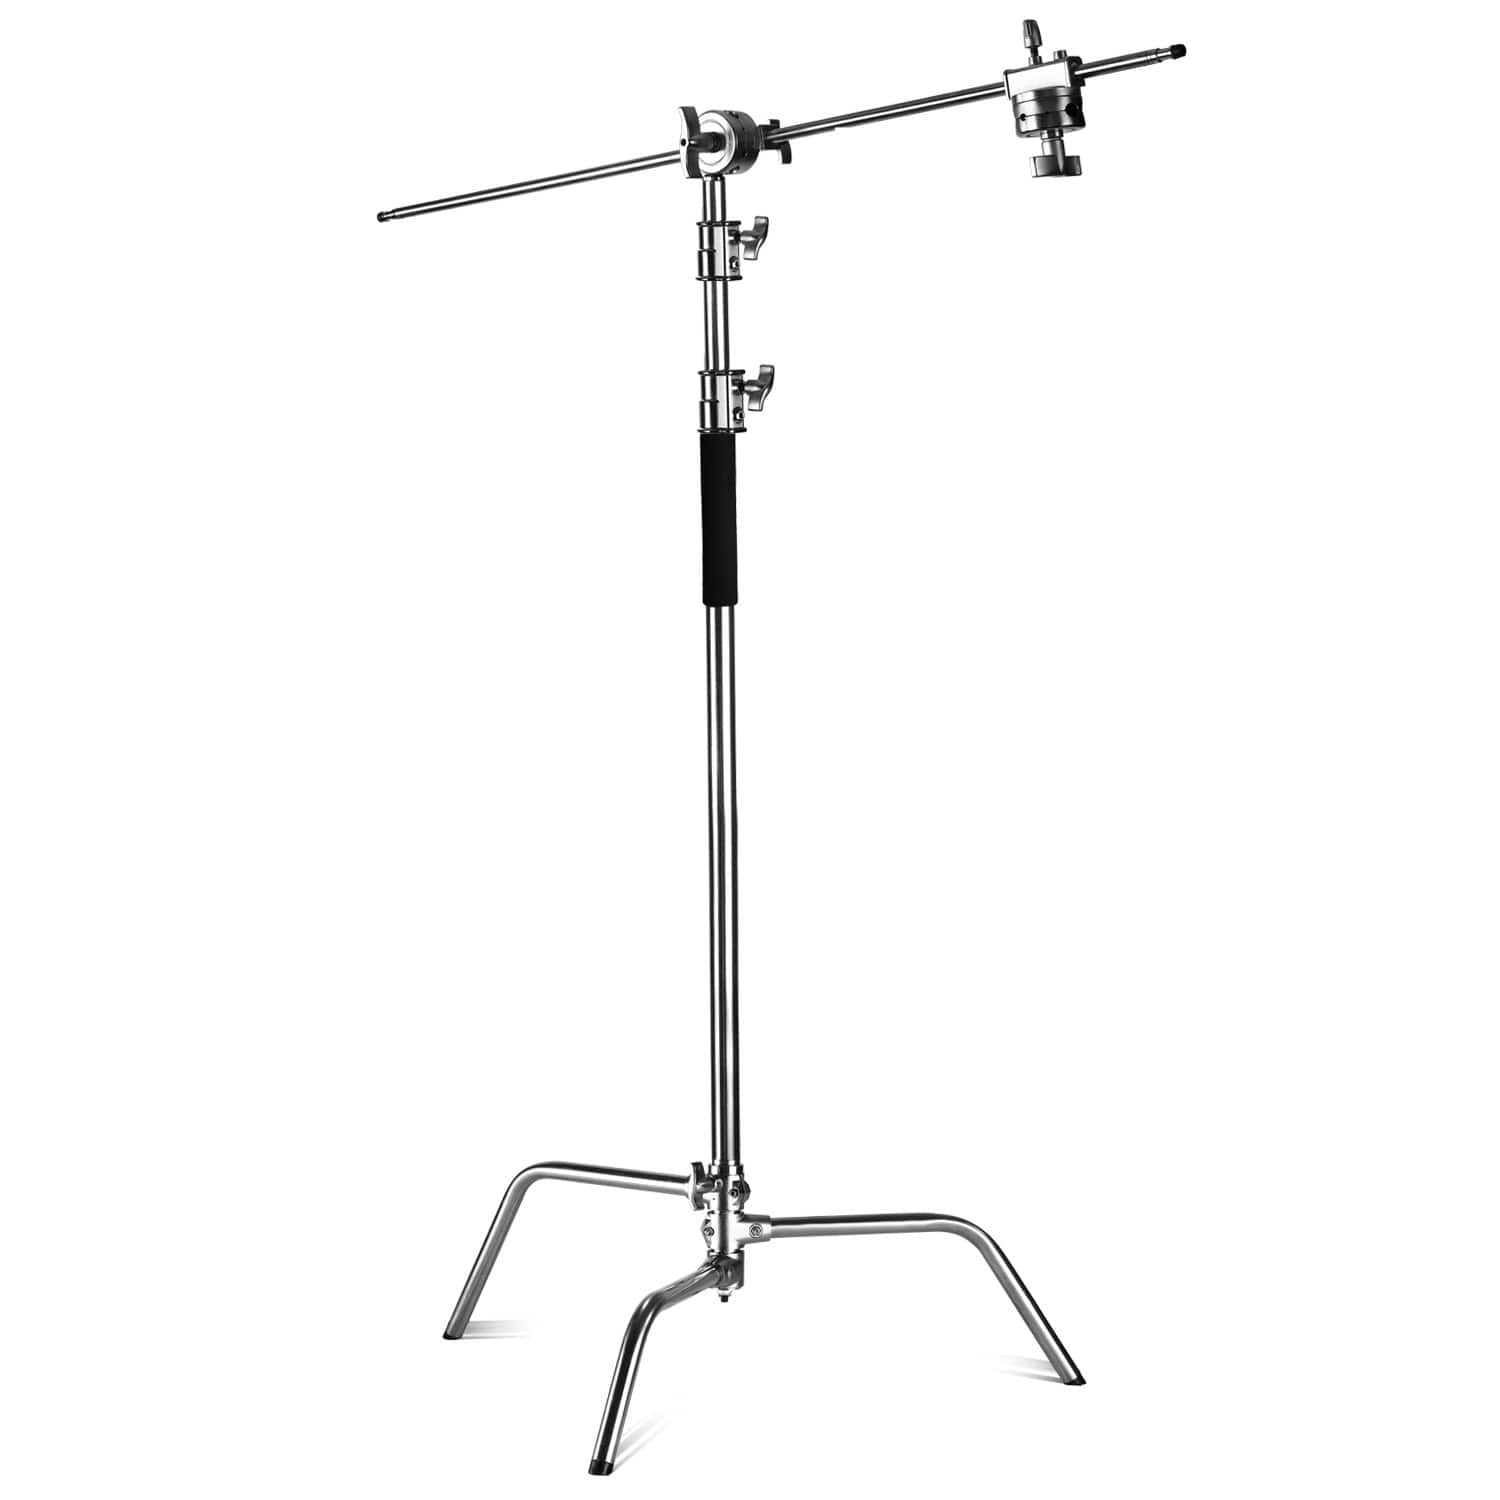 Neewer Pro 10ft Adjustable Photo/Video C-Stand with 4ft Holding Arm - $76.99 + Free Shipping